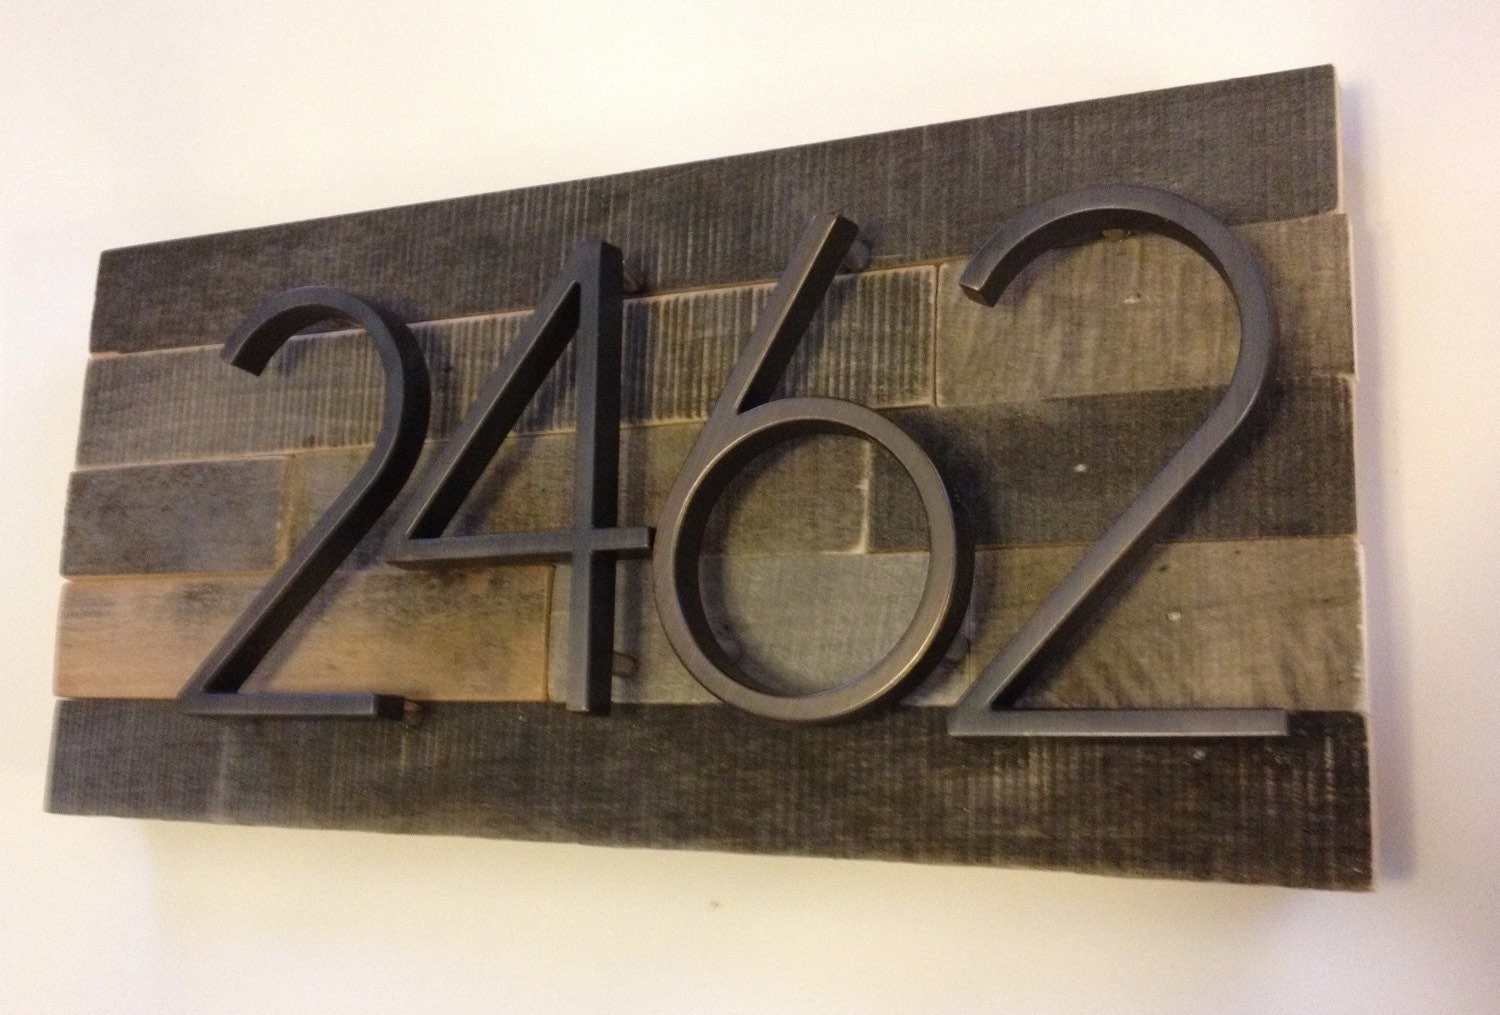 Mid century modern house numbers canada for Modern house numbers canada